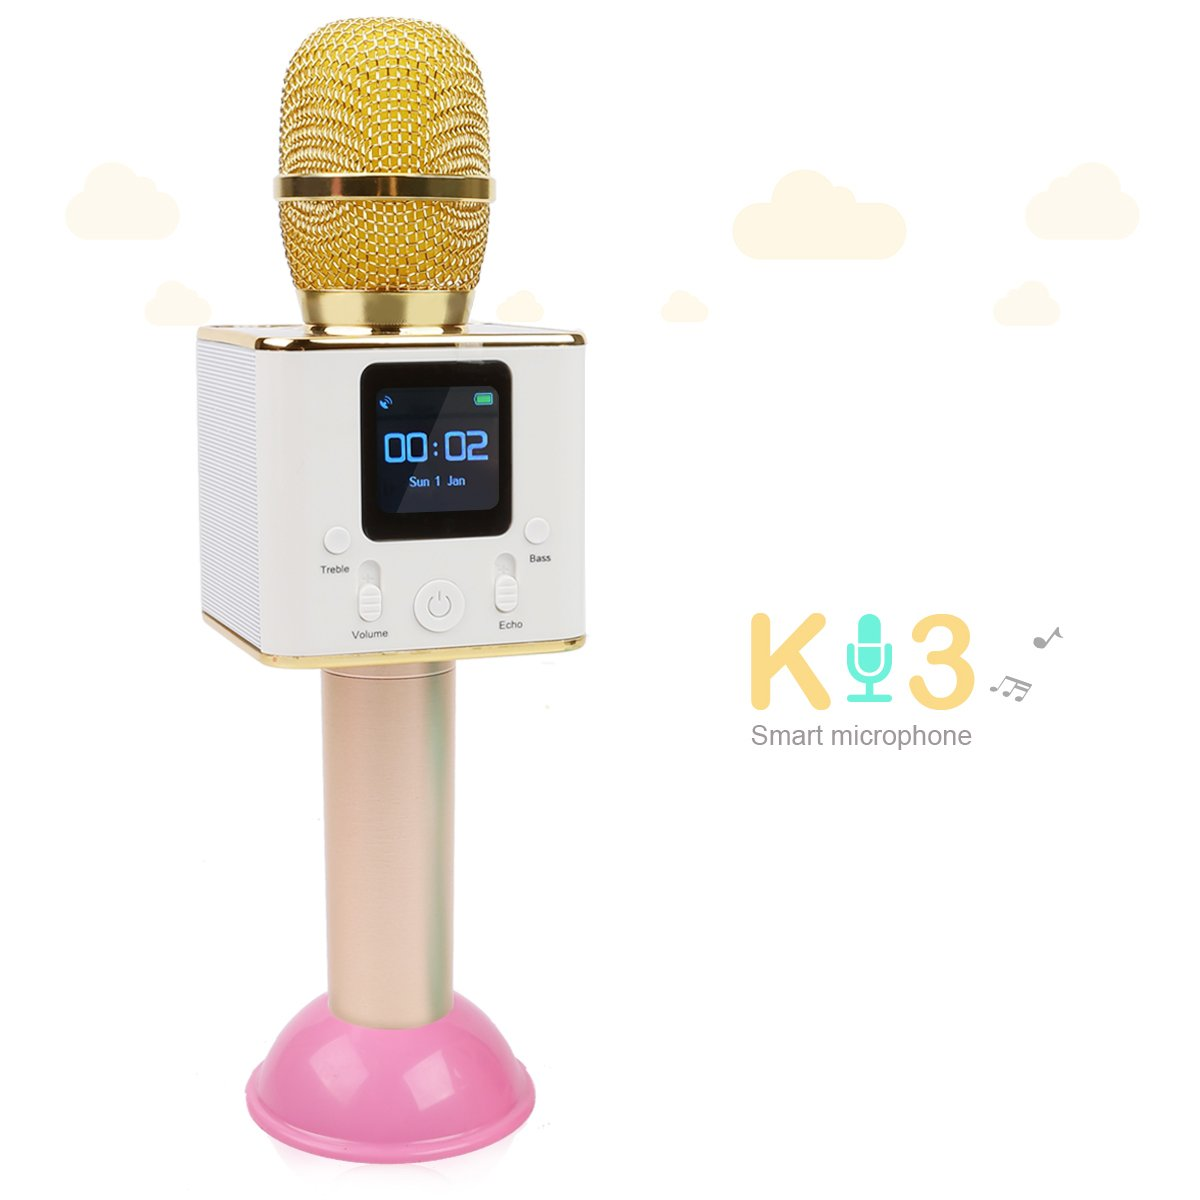 JouerNow K3 Wireless KTV Microphone, Portable Bluetooth Speaker, Home Karaoke Singing, Handheld Stereo Music Player, With LCD Touch Screen/Case/Base